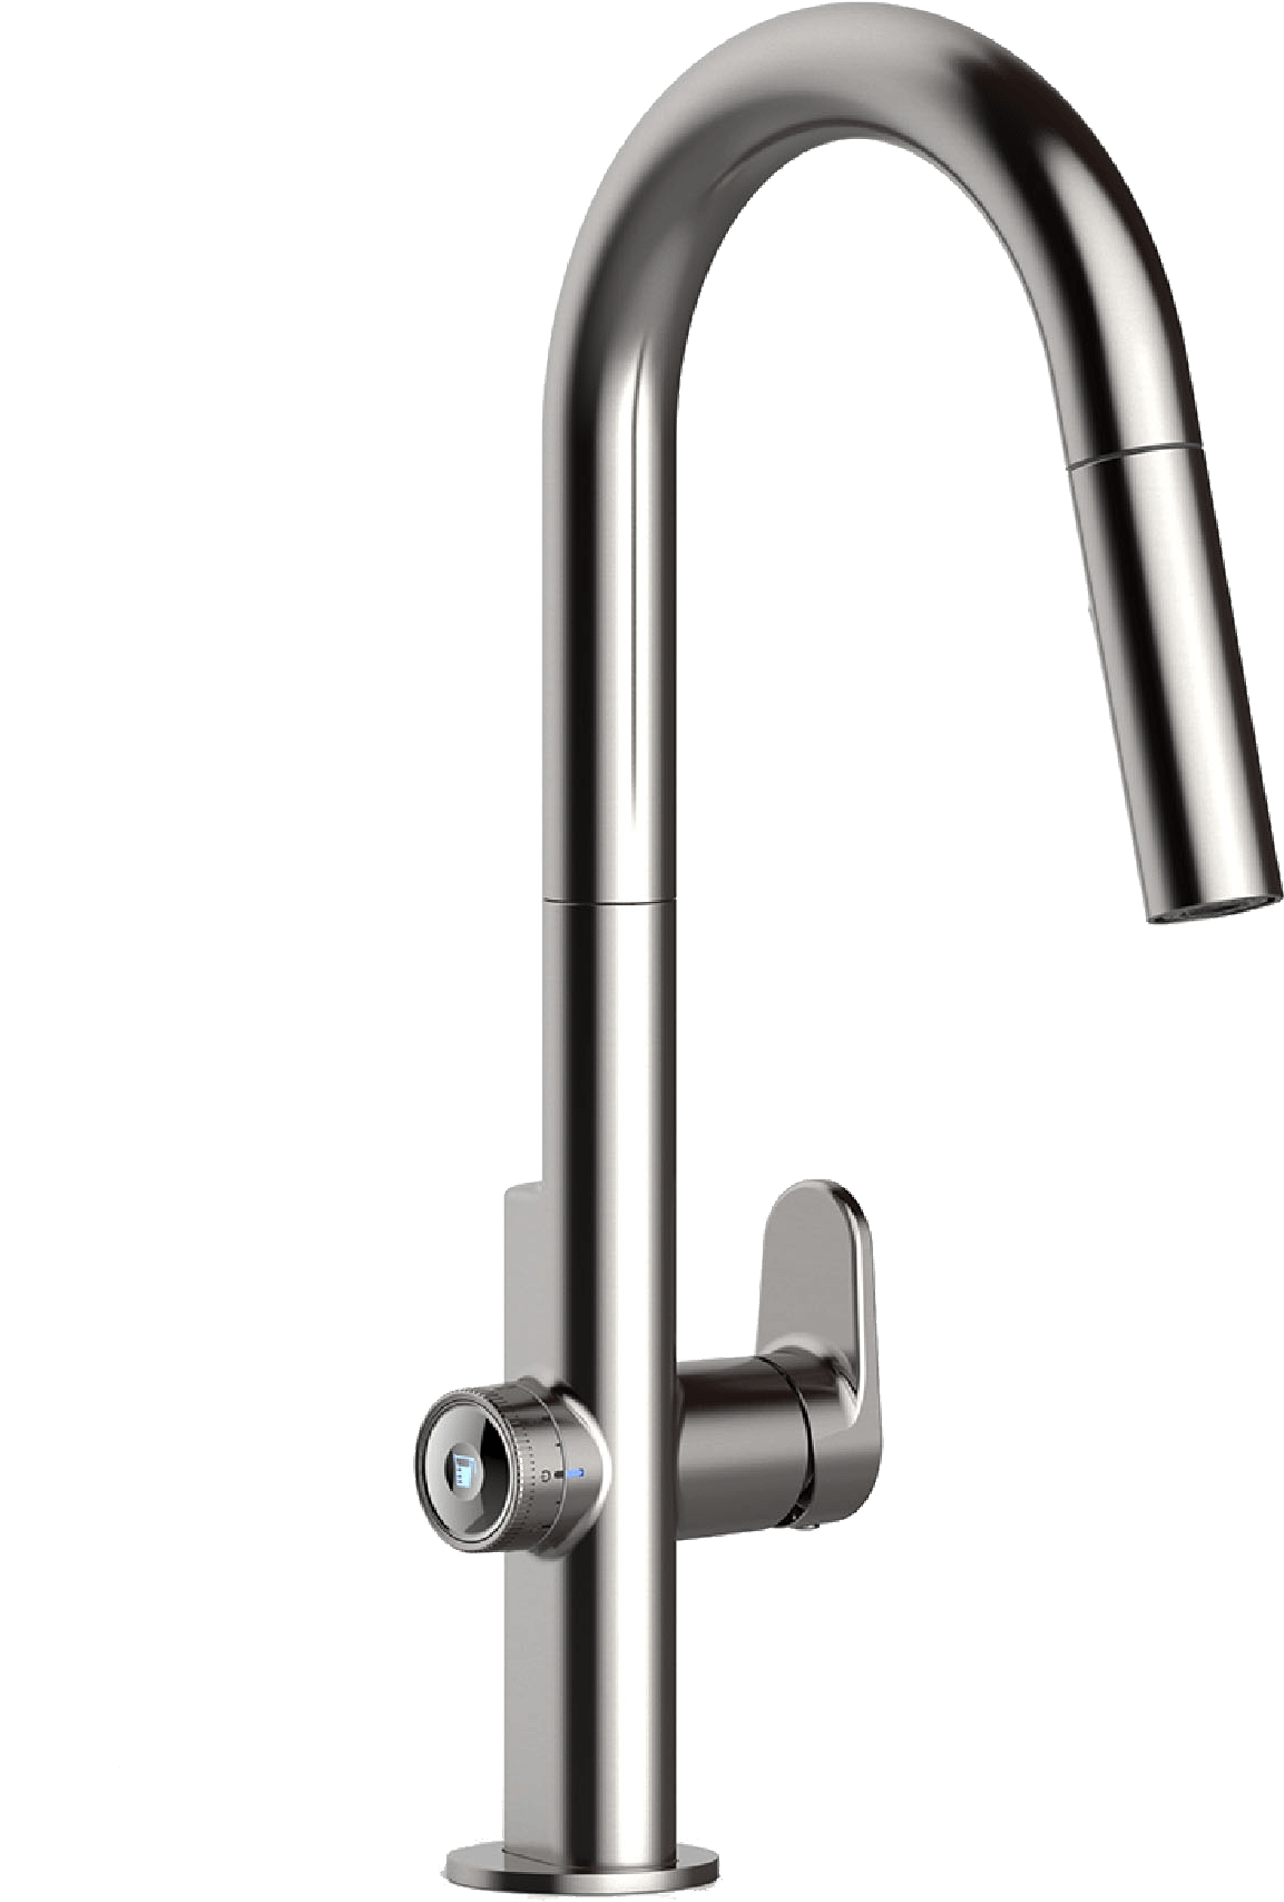 Beale Measurefill Touch Kitchen Faucet Clipart Full Size Clipart 3064105 Pinclipart